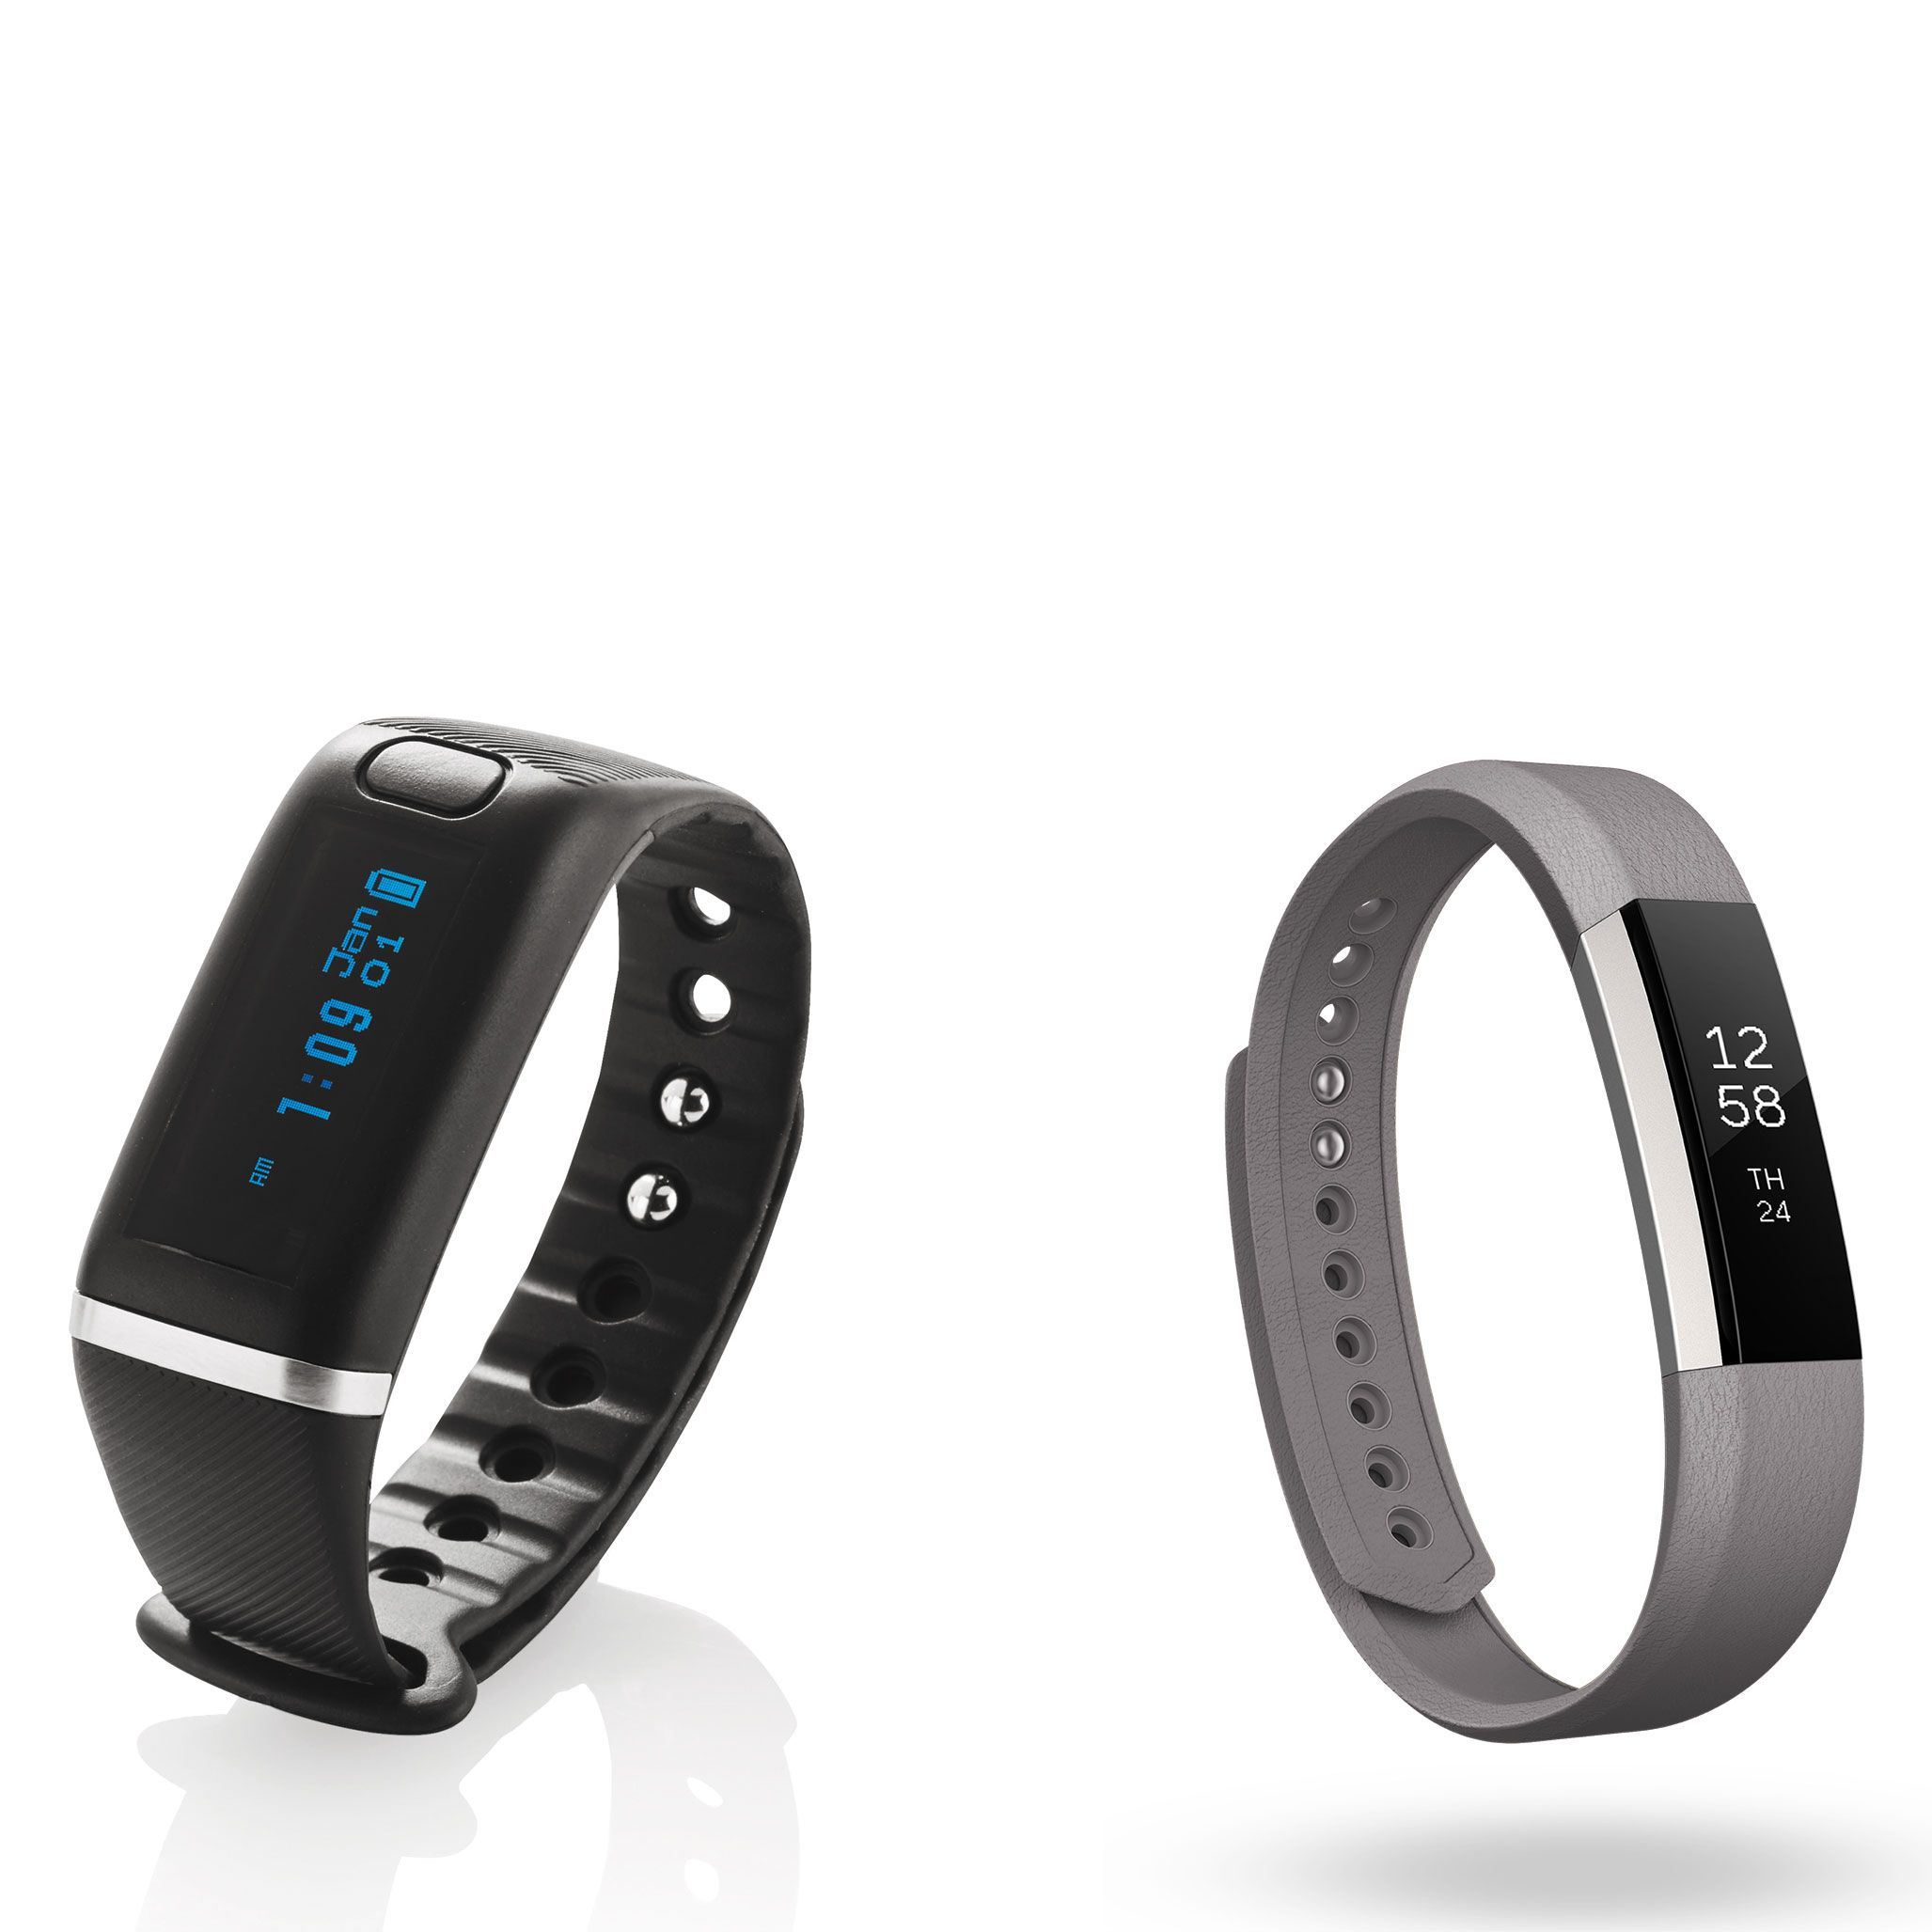 Silvercrest Lidl Opiniones Lidl Activity Tracker Vs Fitbit Alta Is Lidl S Activity Tracker